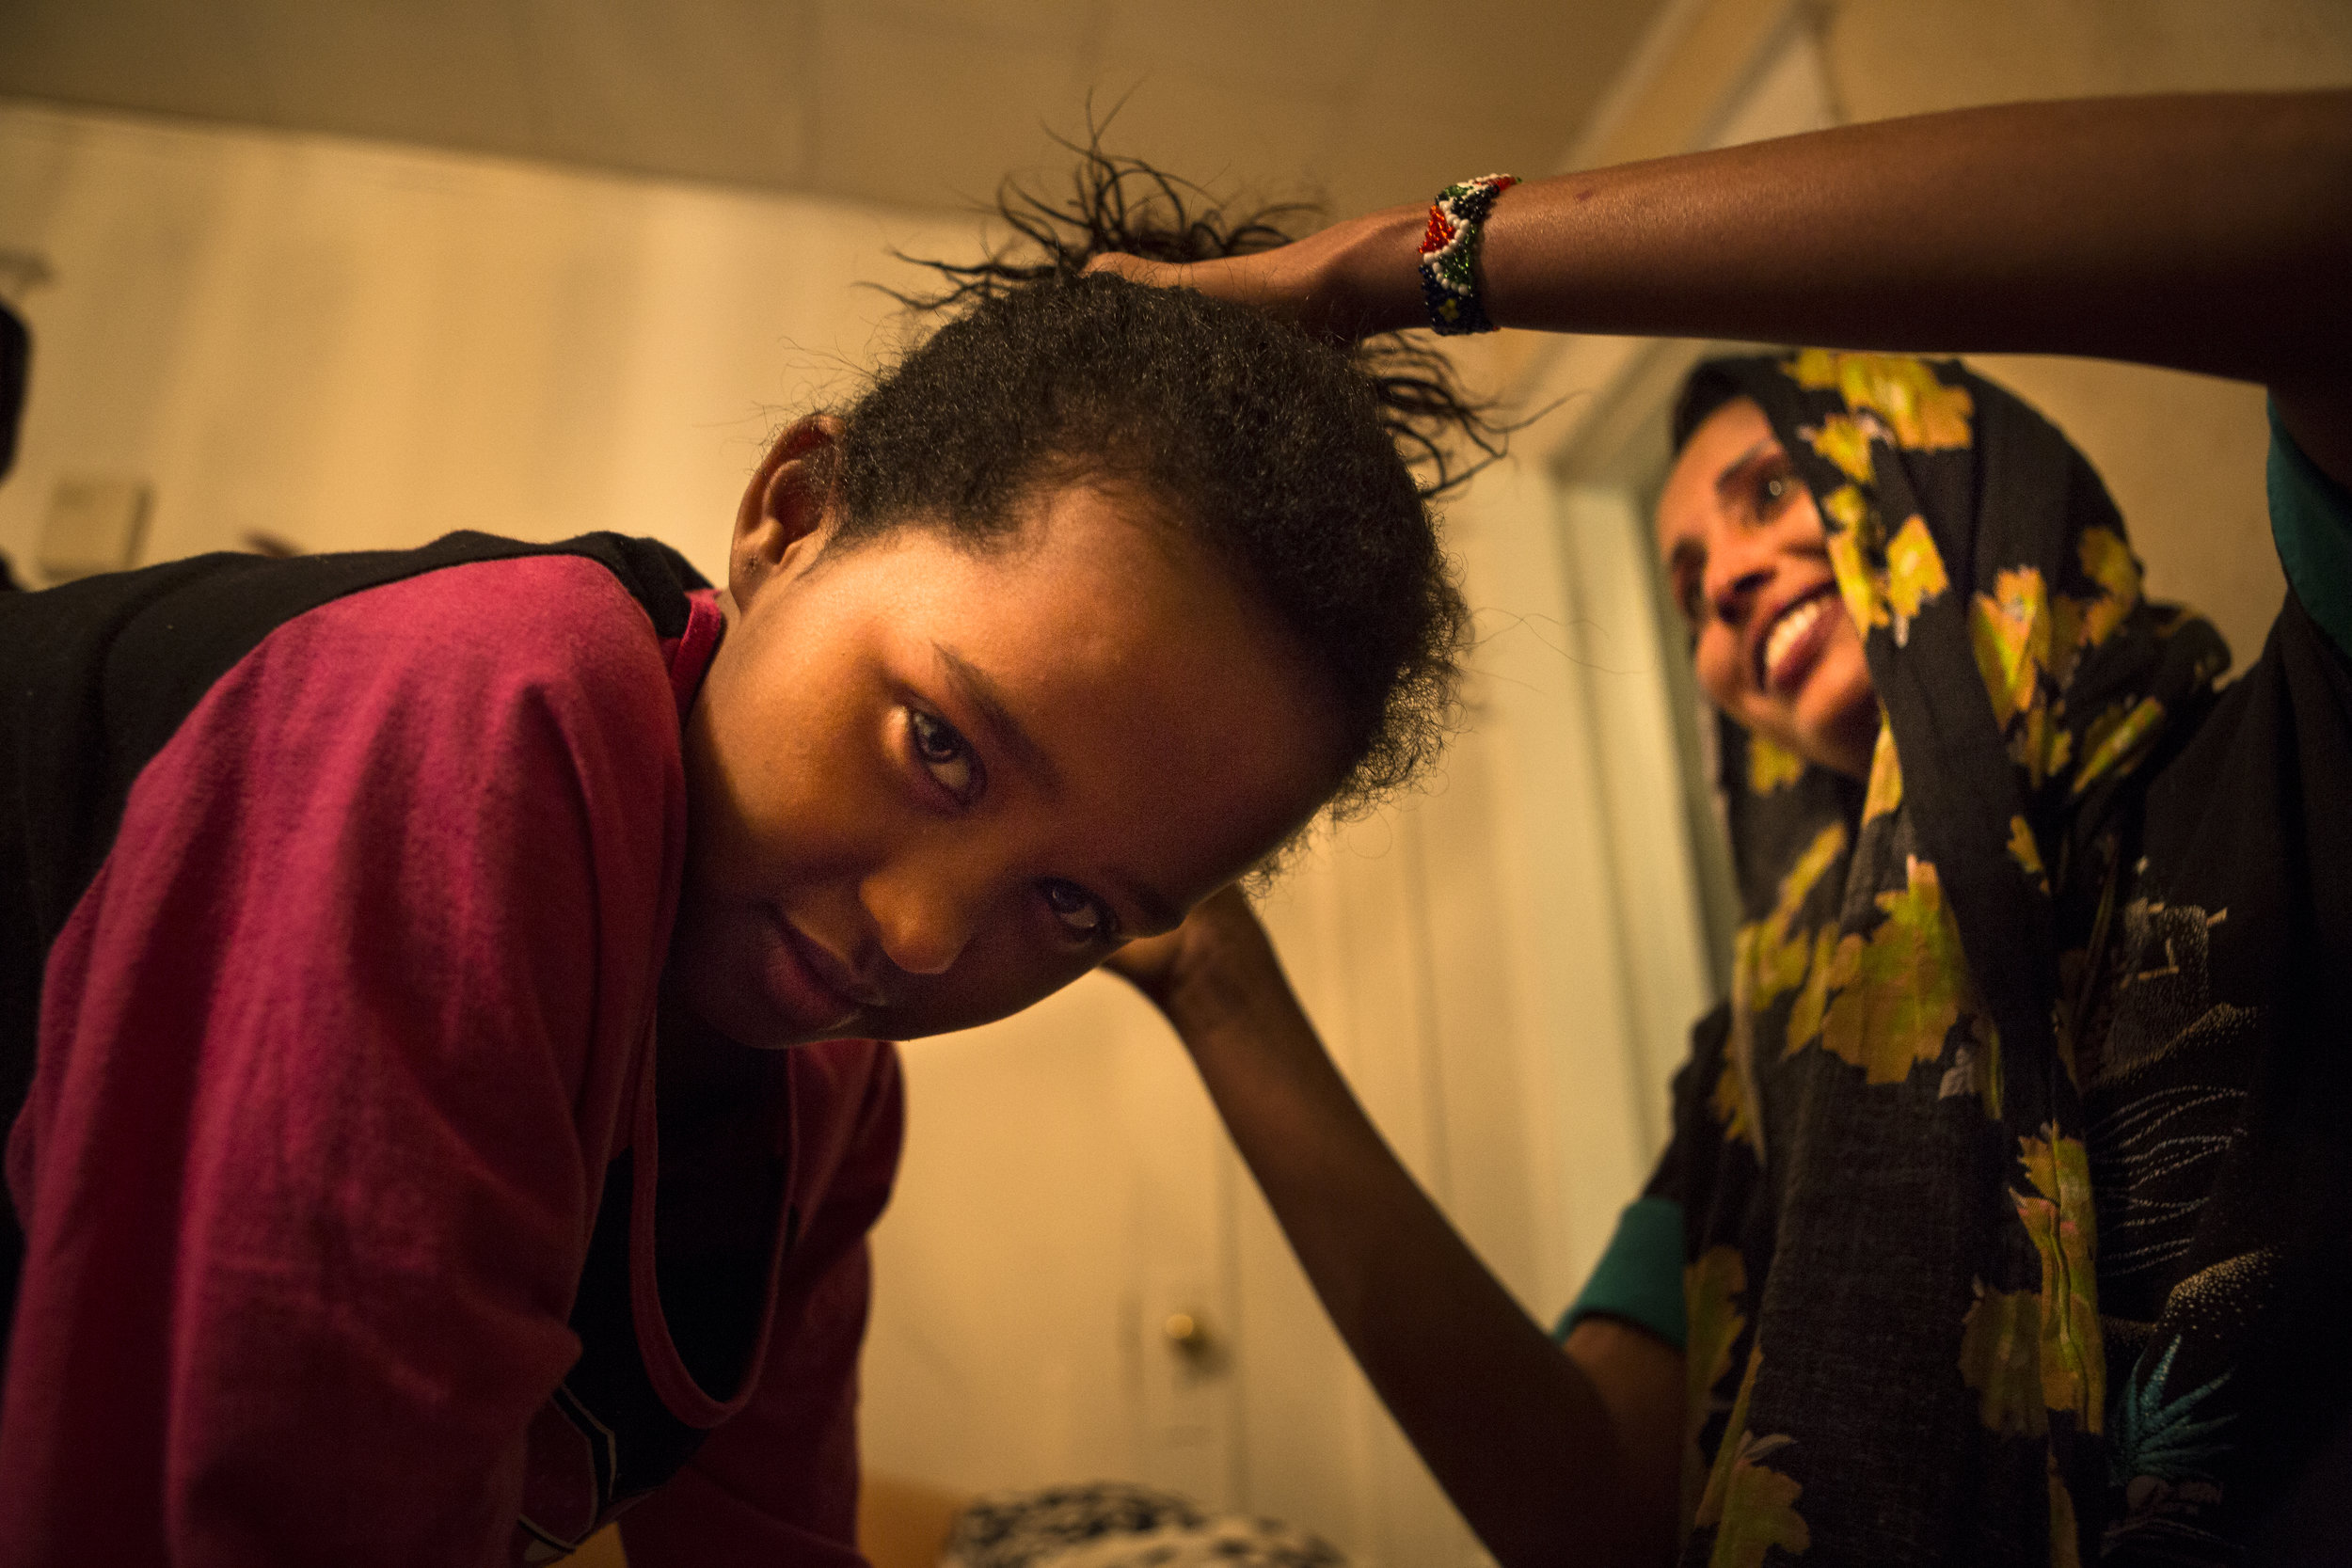 Najma Said gets her hair tied by her older sister, Husna. Rochester, NY. Dec 3, 2016.